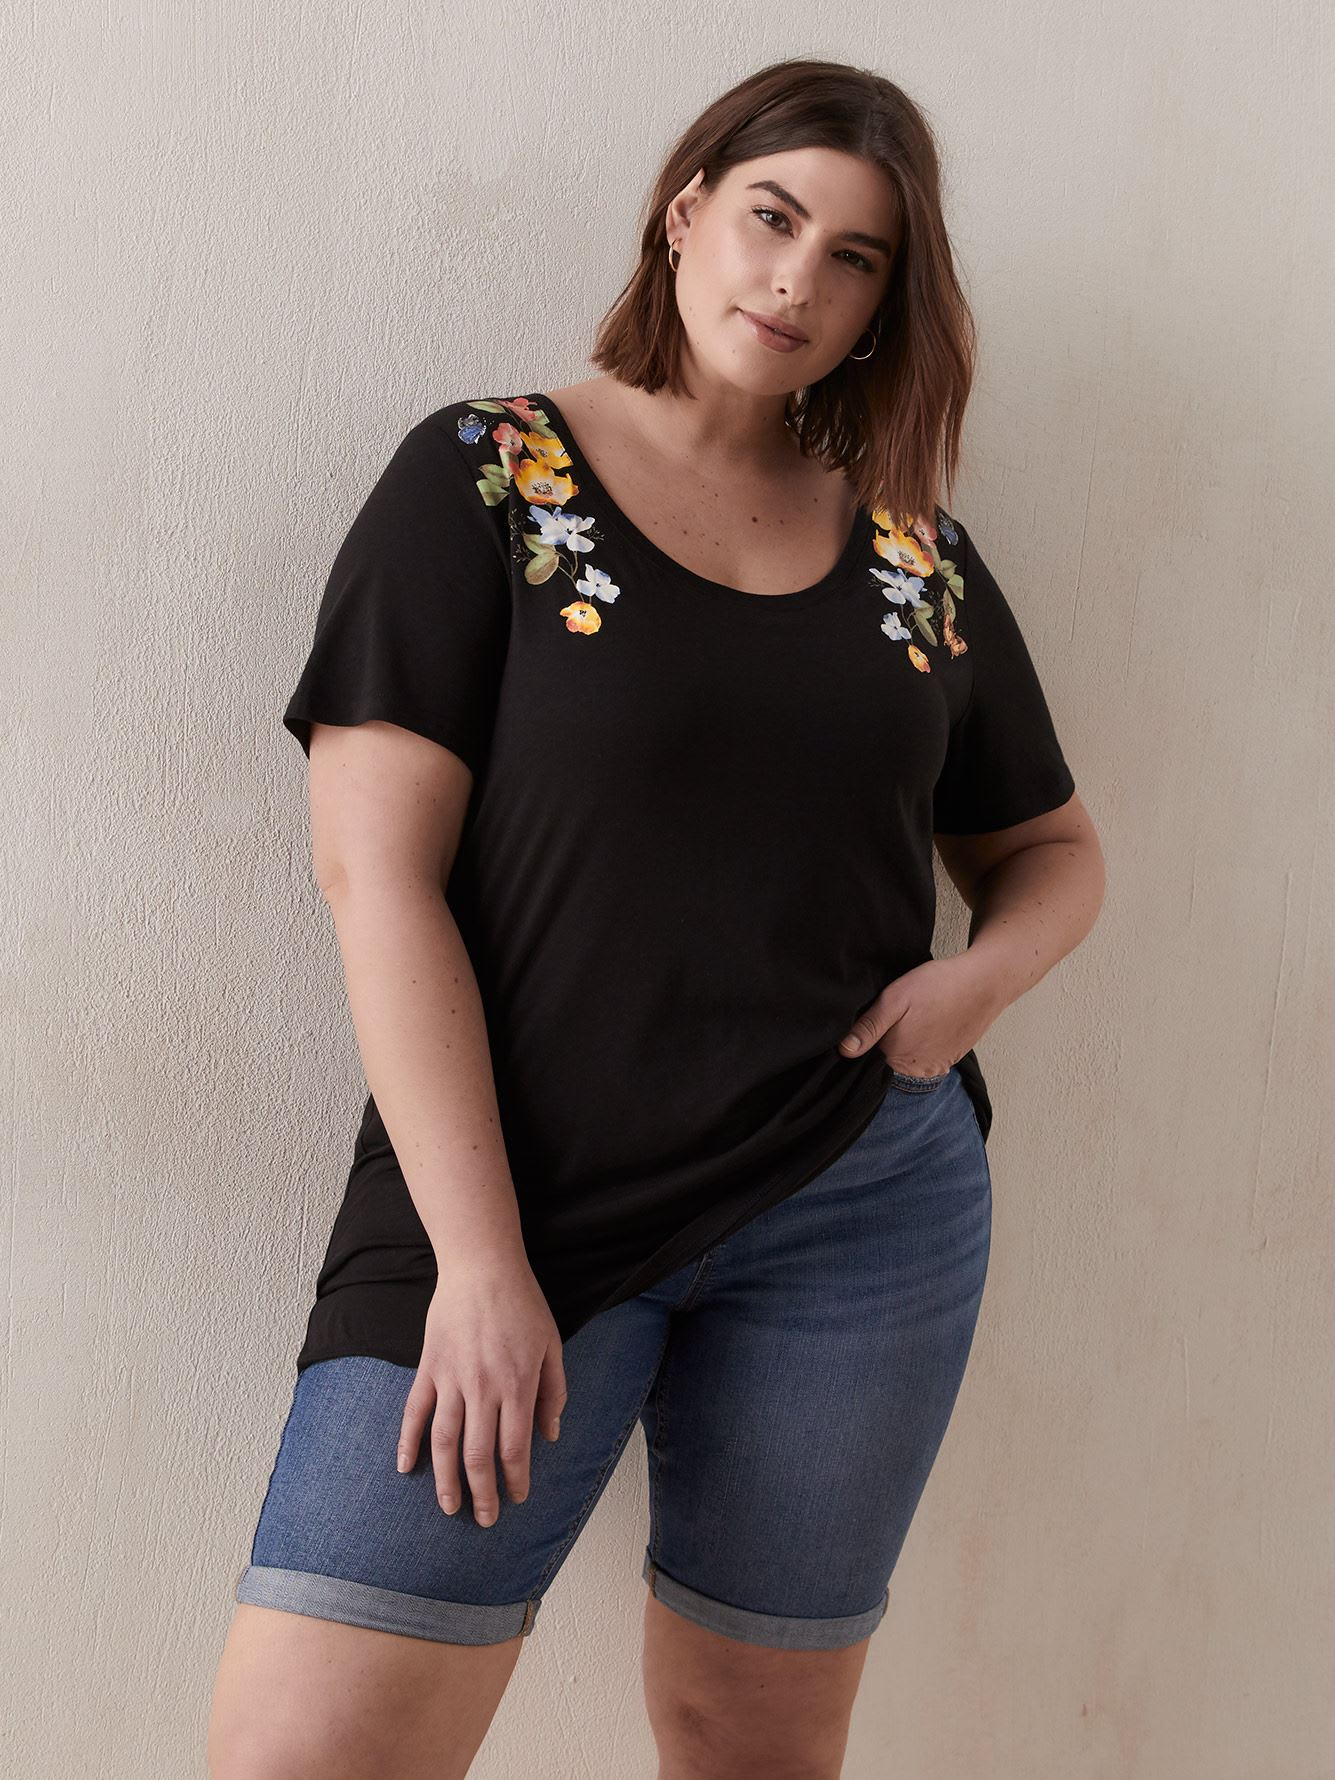 Boyfriend Fit Scoop Neck T-Shirt - In Every Story